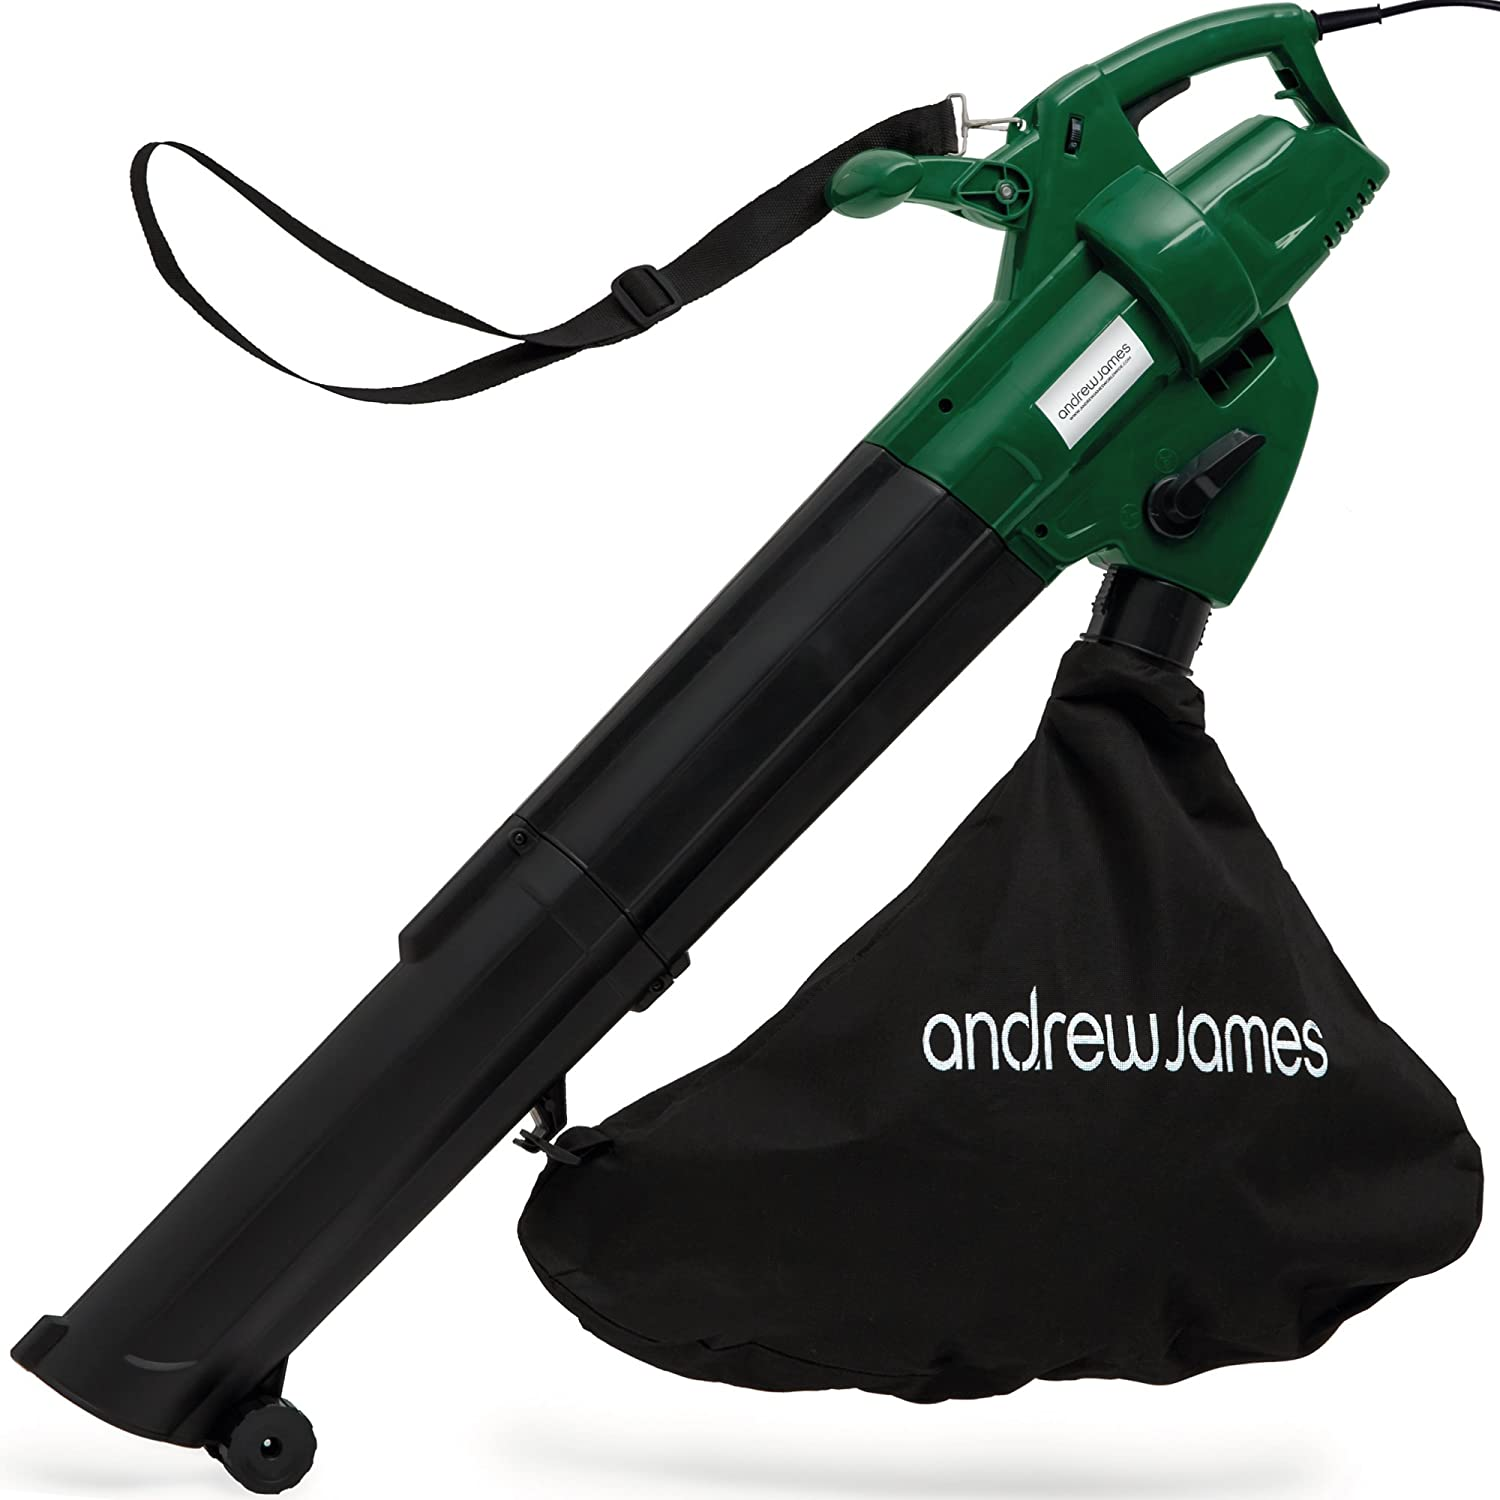 Andrew James Leaf Blower and Vacuum Mulcher | Electric 4KG Lightweight Garden Tool with 45L Shredder Bag & 10m Power Cable | Easy Function Change with Adjustable Power & Shoulder Strap | 2800W | Green & Black